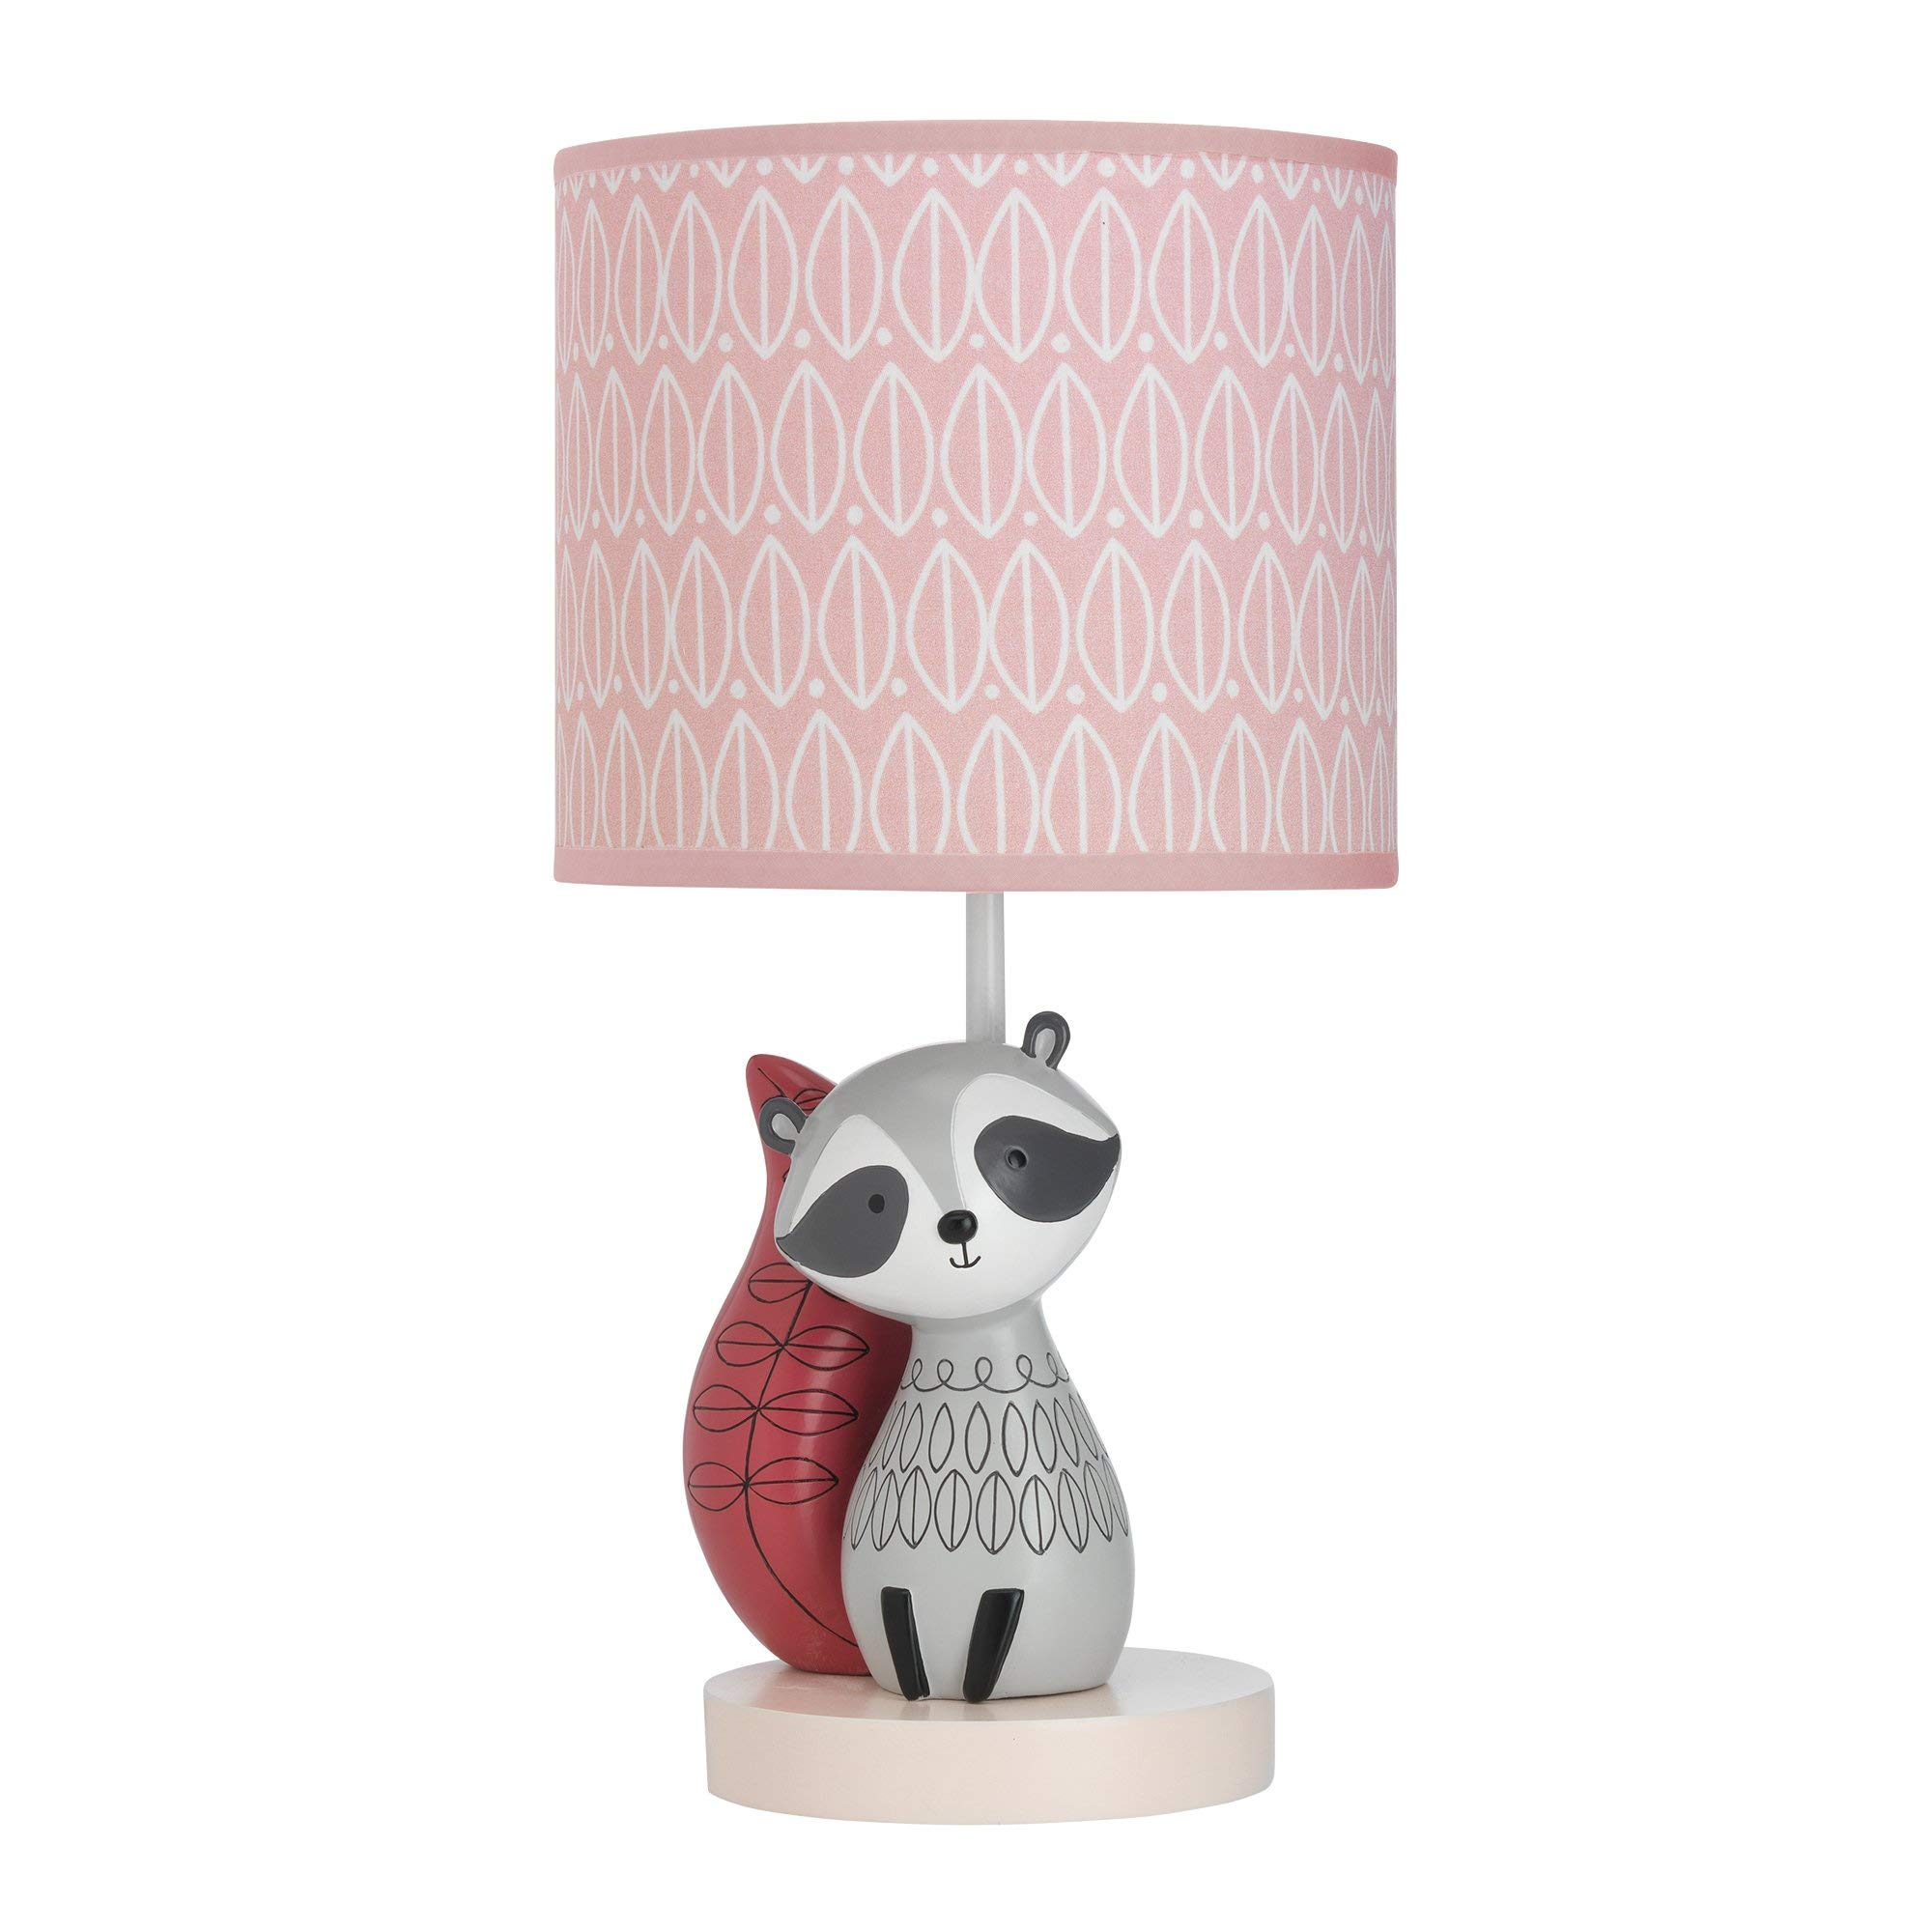 Lambs & Ivy Little Woodland Raccoon Lamp with Shade & Bulb, Pink/White